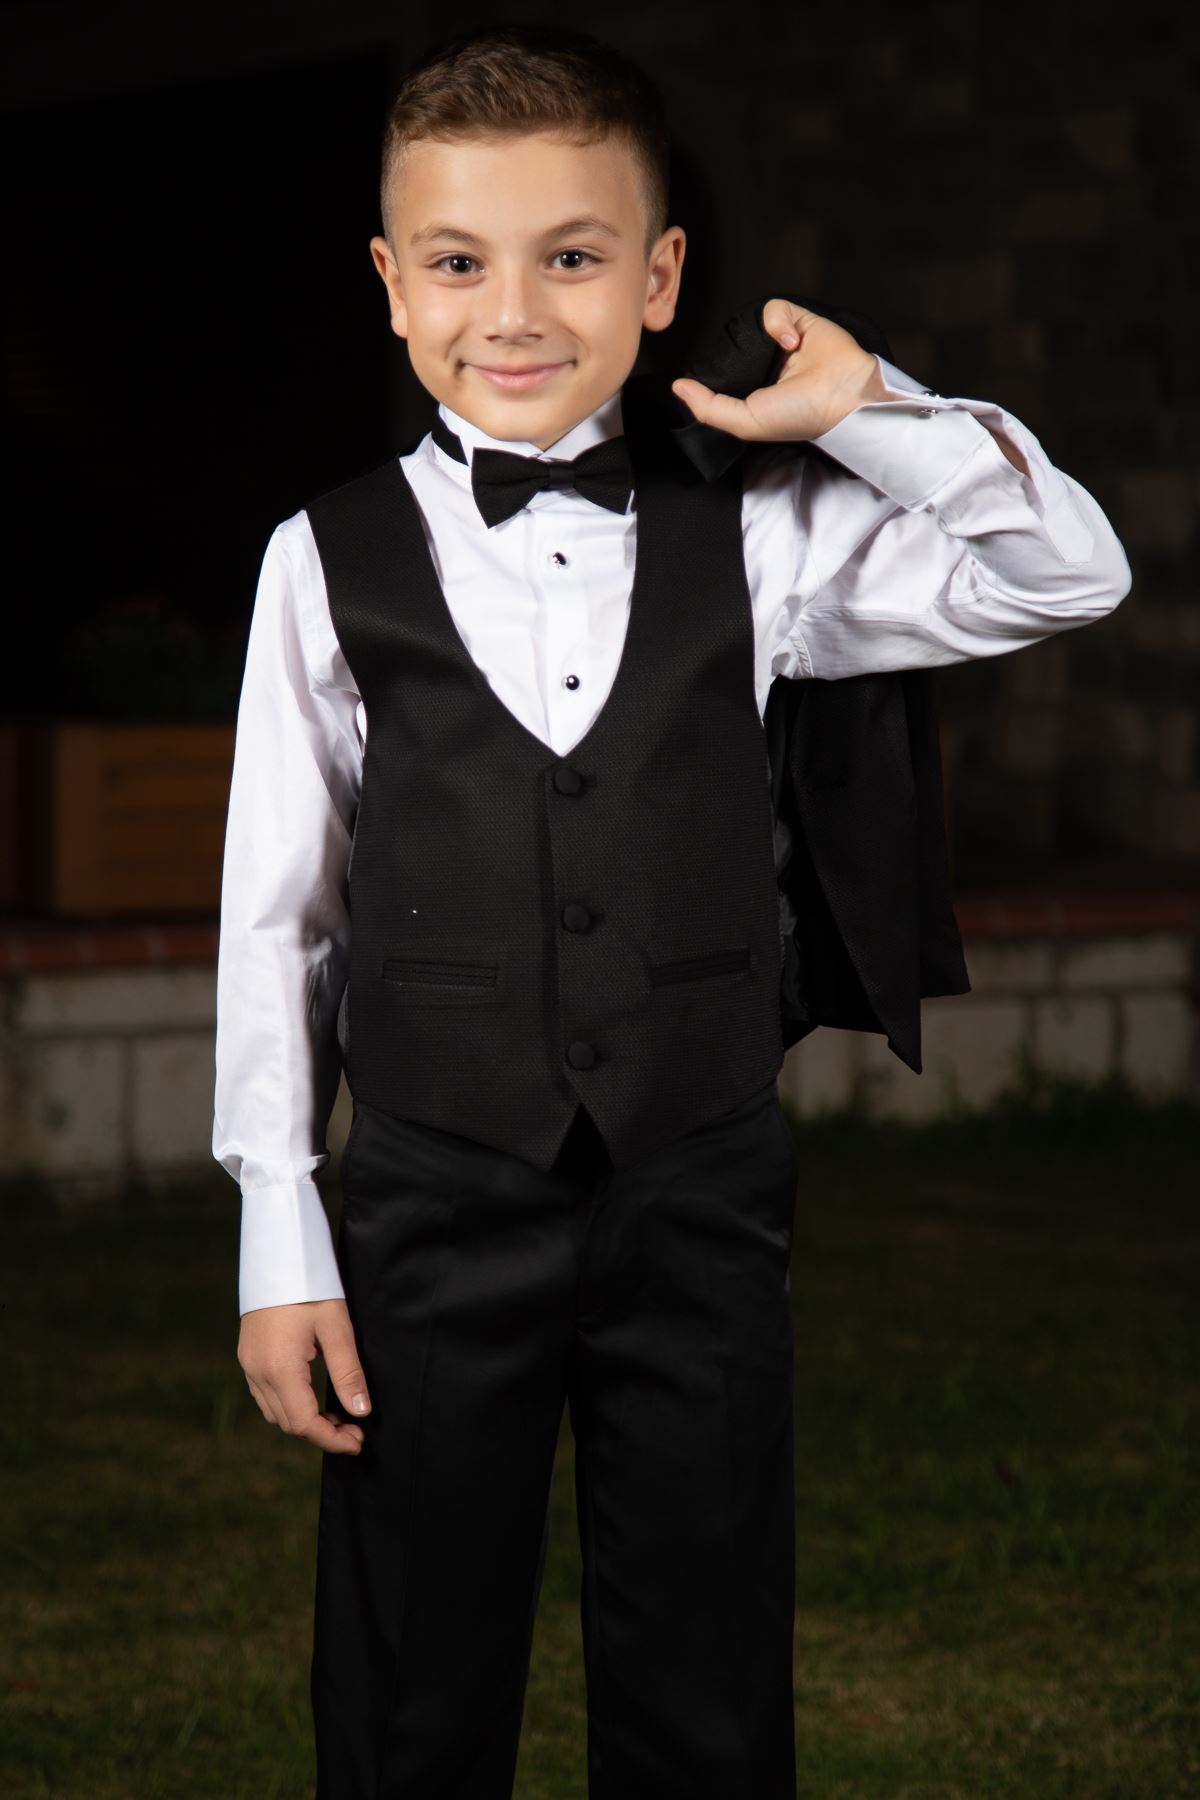 Honeycomb Pattern, Shawl Collar, Full set 4 pieces Boy Special Suit 188 Black